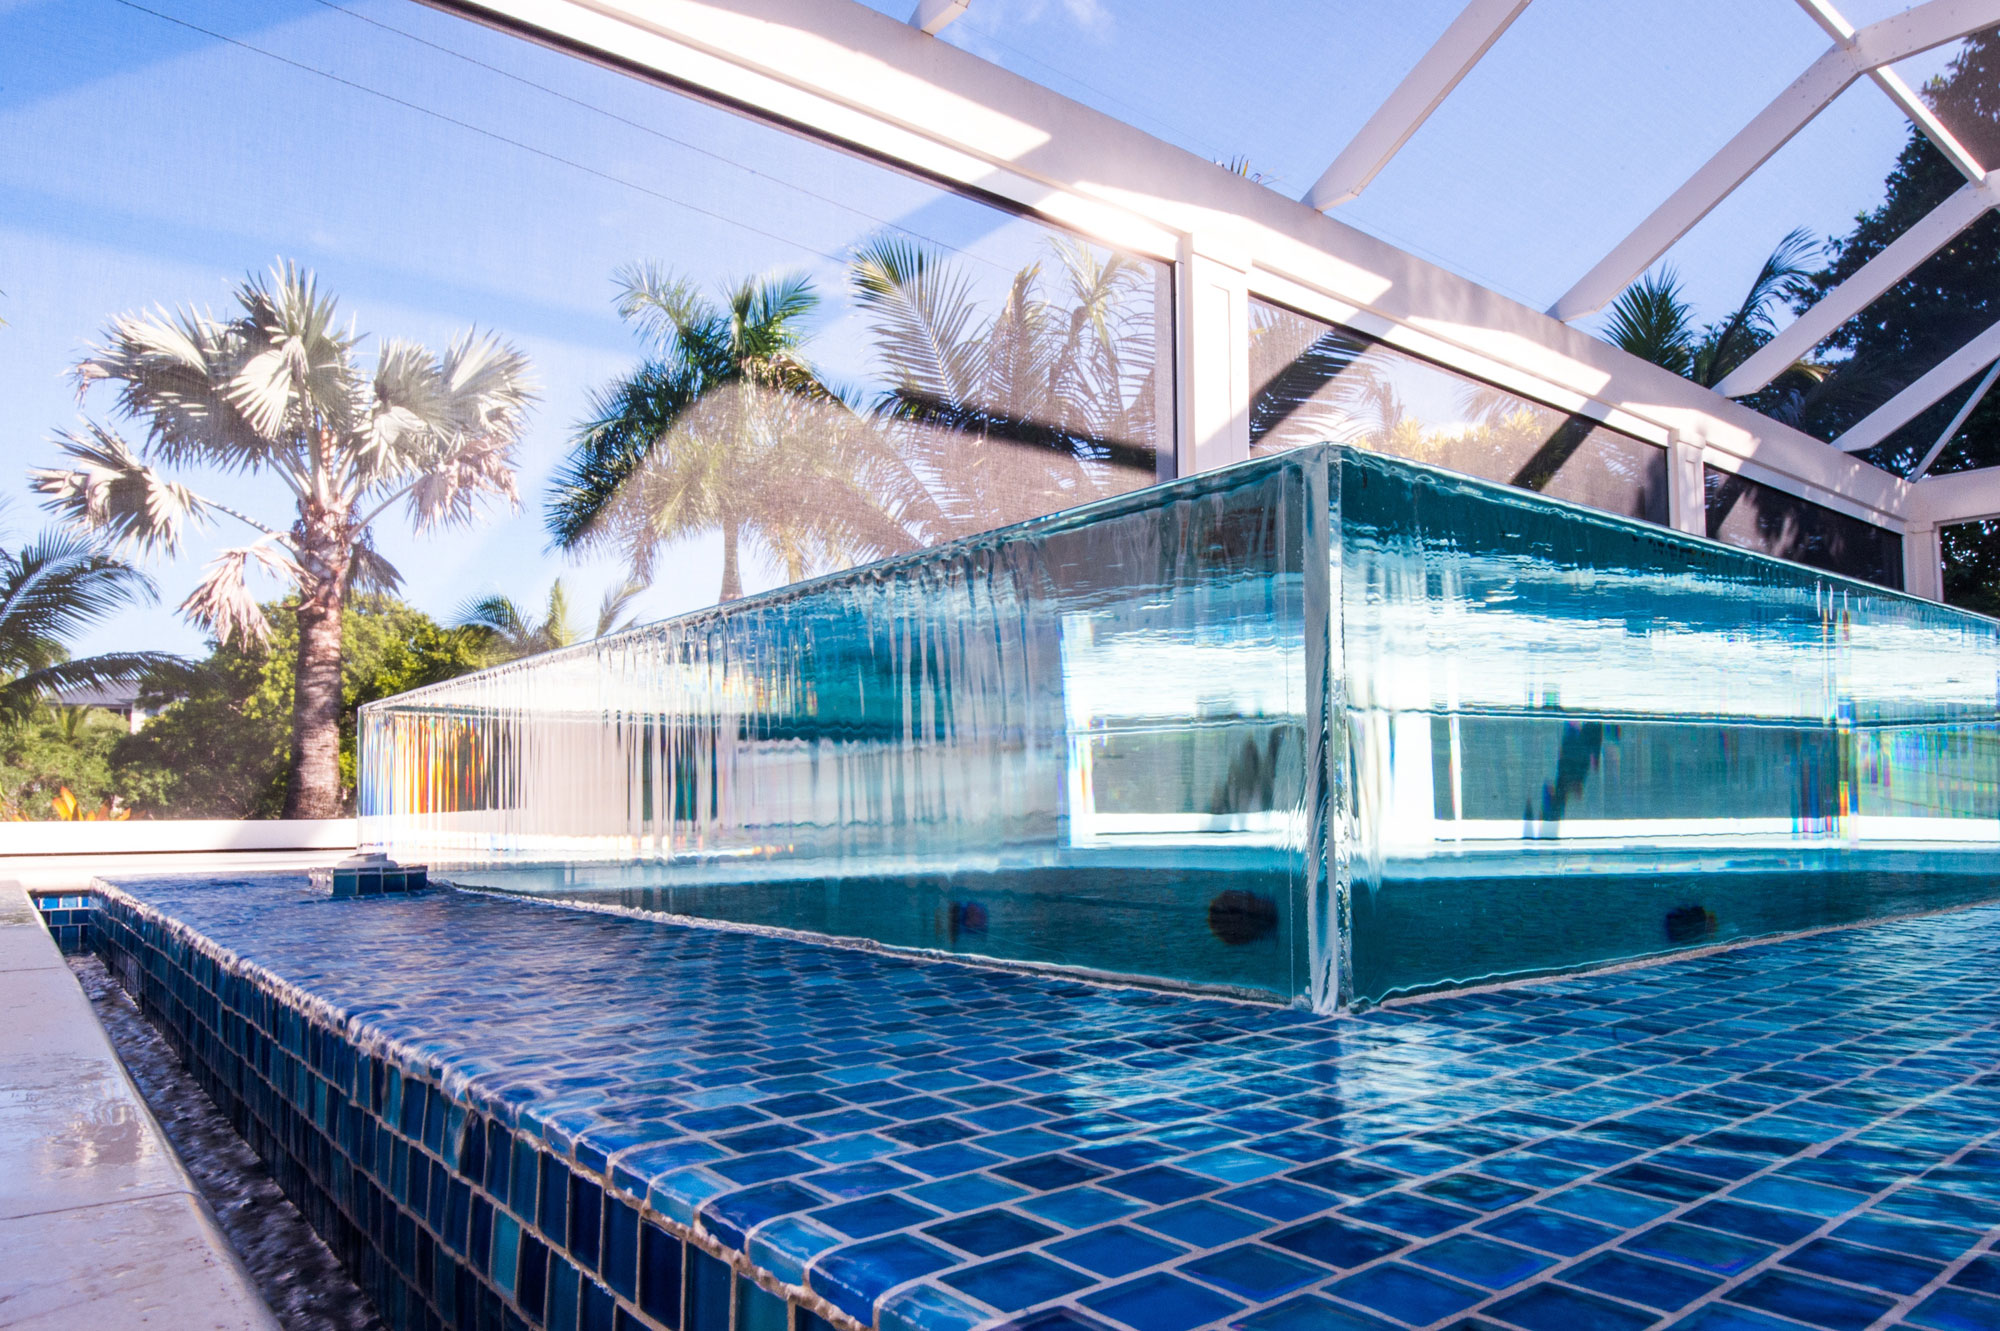 Superb Resurfacing A Pool In Florida: Your Guide To Cost And Other Considerations